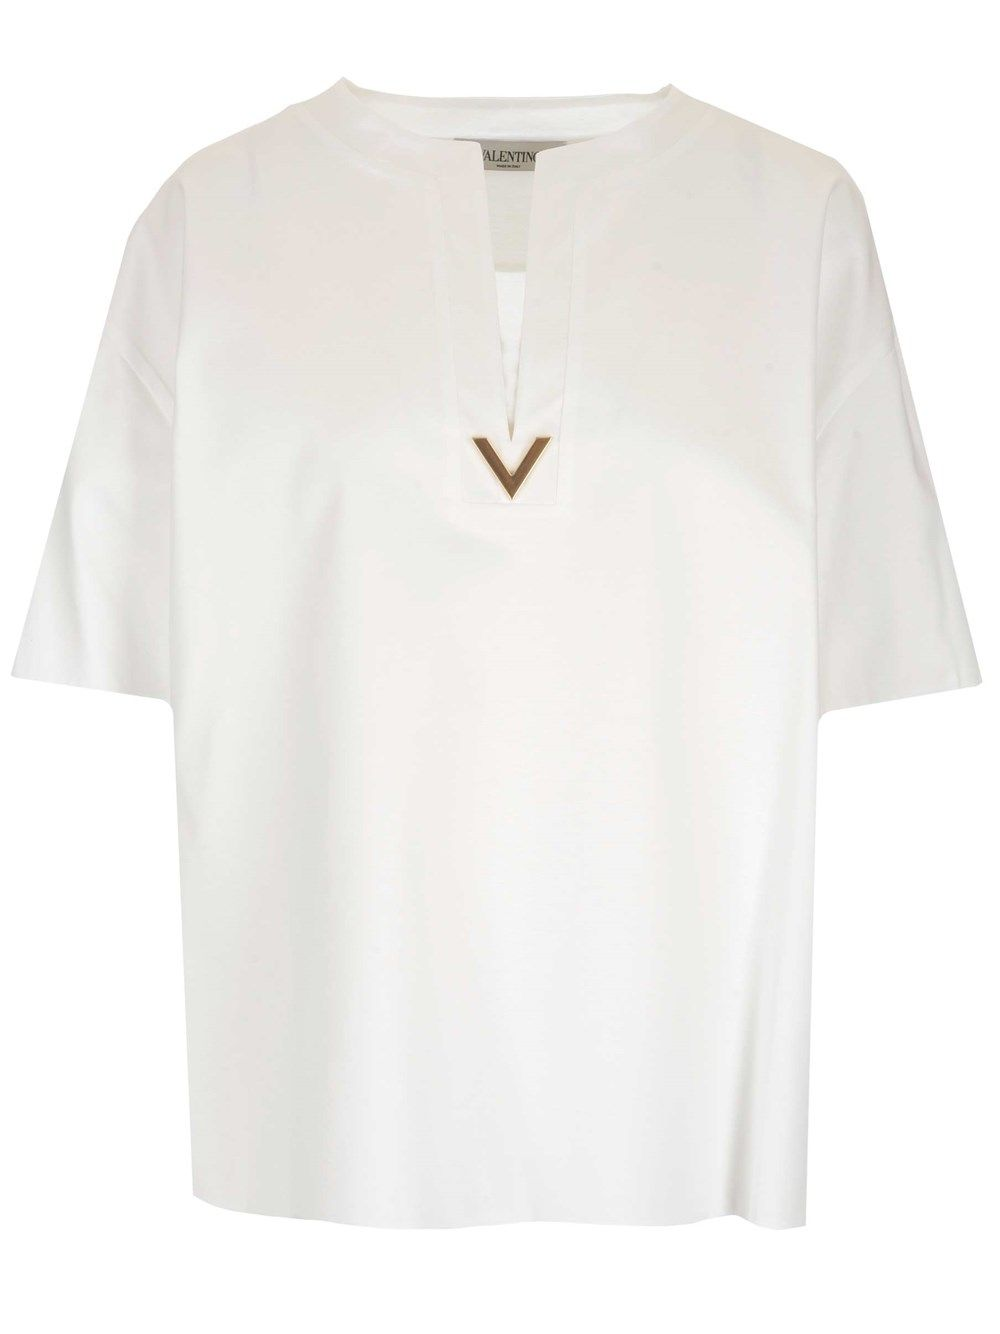 Valentino VALENTINO WOMEN'S VB3MG11T69W0BO WHITE COTTON BLOUSE